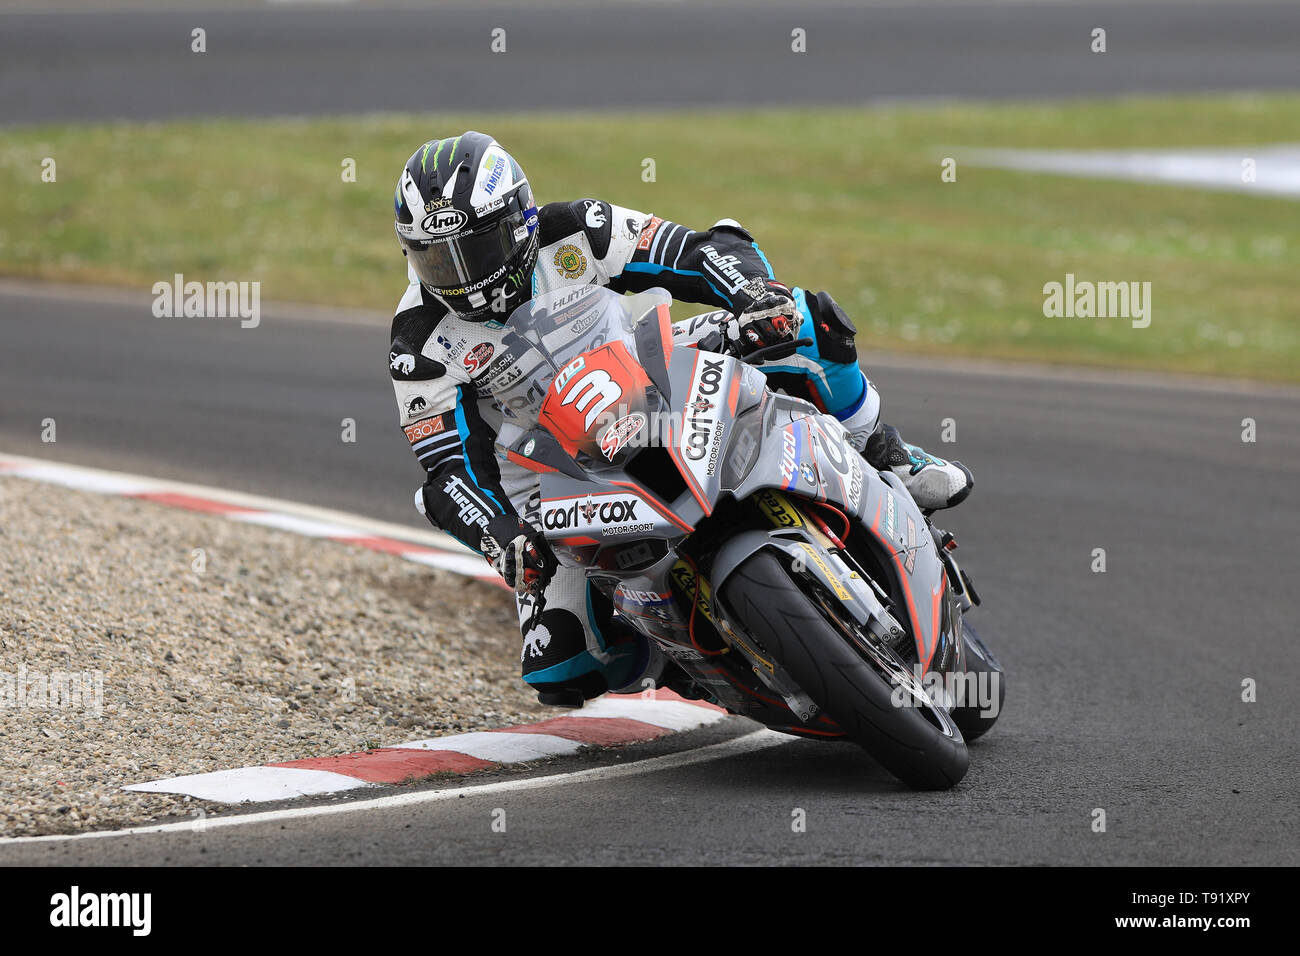 Portrush, Northern Ireland. 16th May, 2019. International North West 200 Motorcycle road racing, Thursday practice and evening racing; Michael Dunlop was 4th fastest on the MD Racing BMW during the SuperStock qualifying session Credit: Action Plus Sports/Alamy Live News - Stock Image